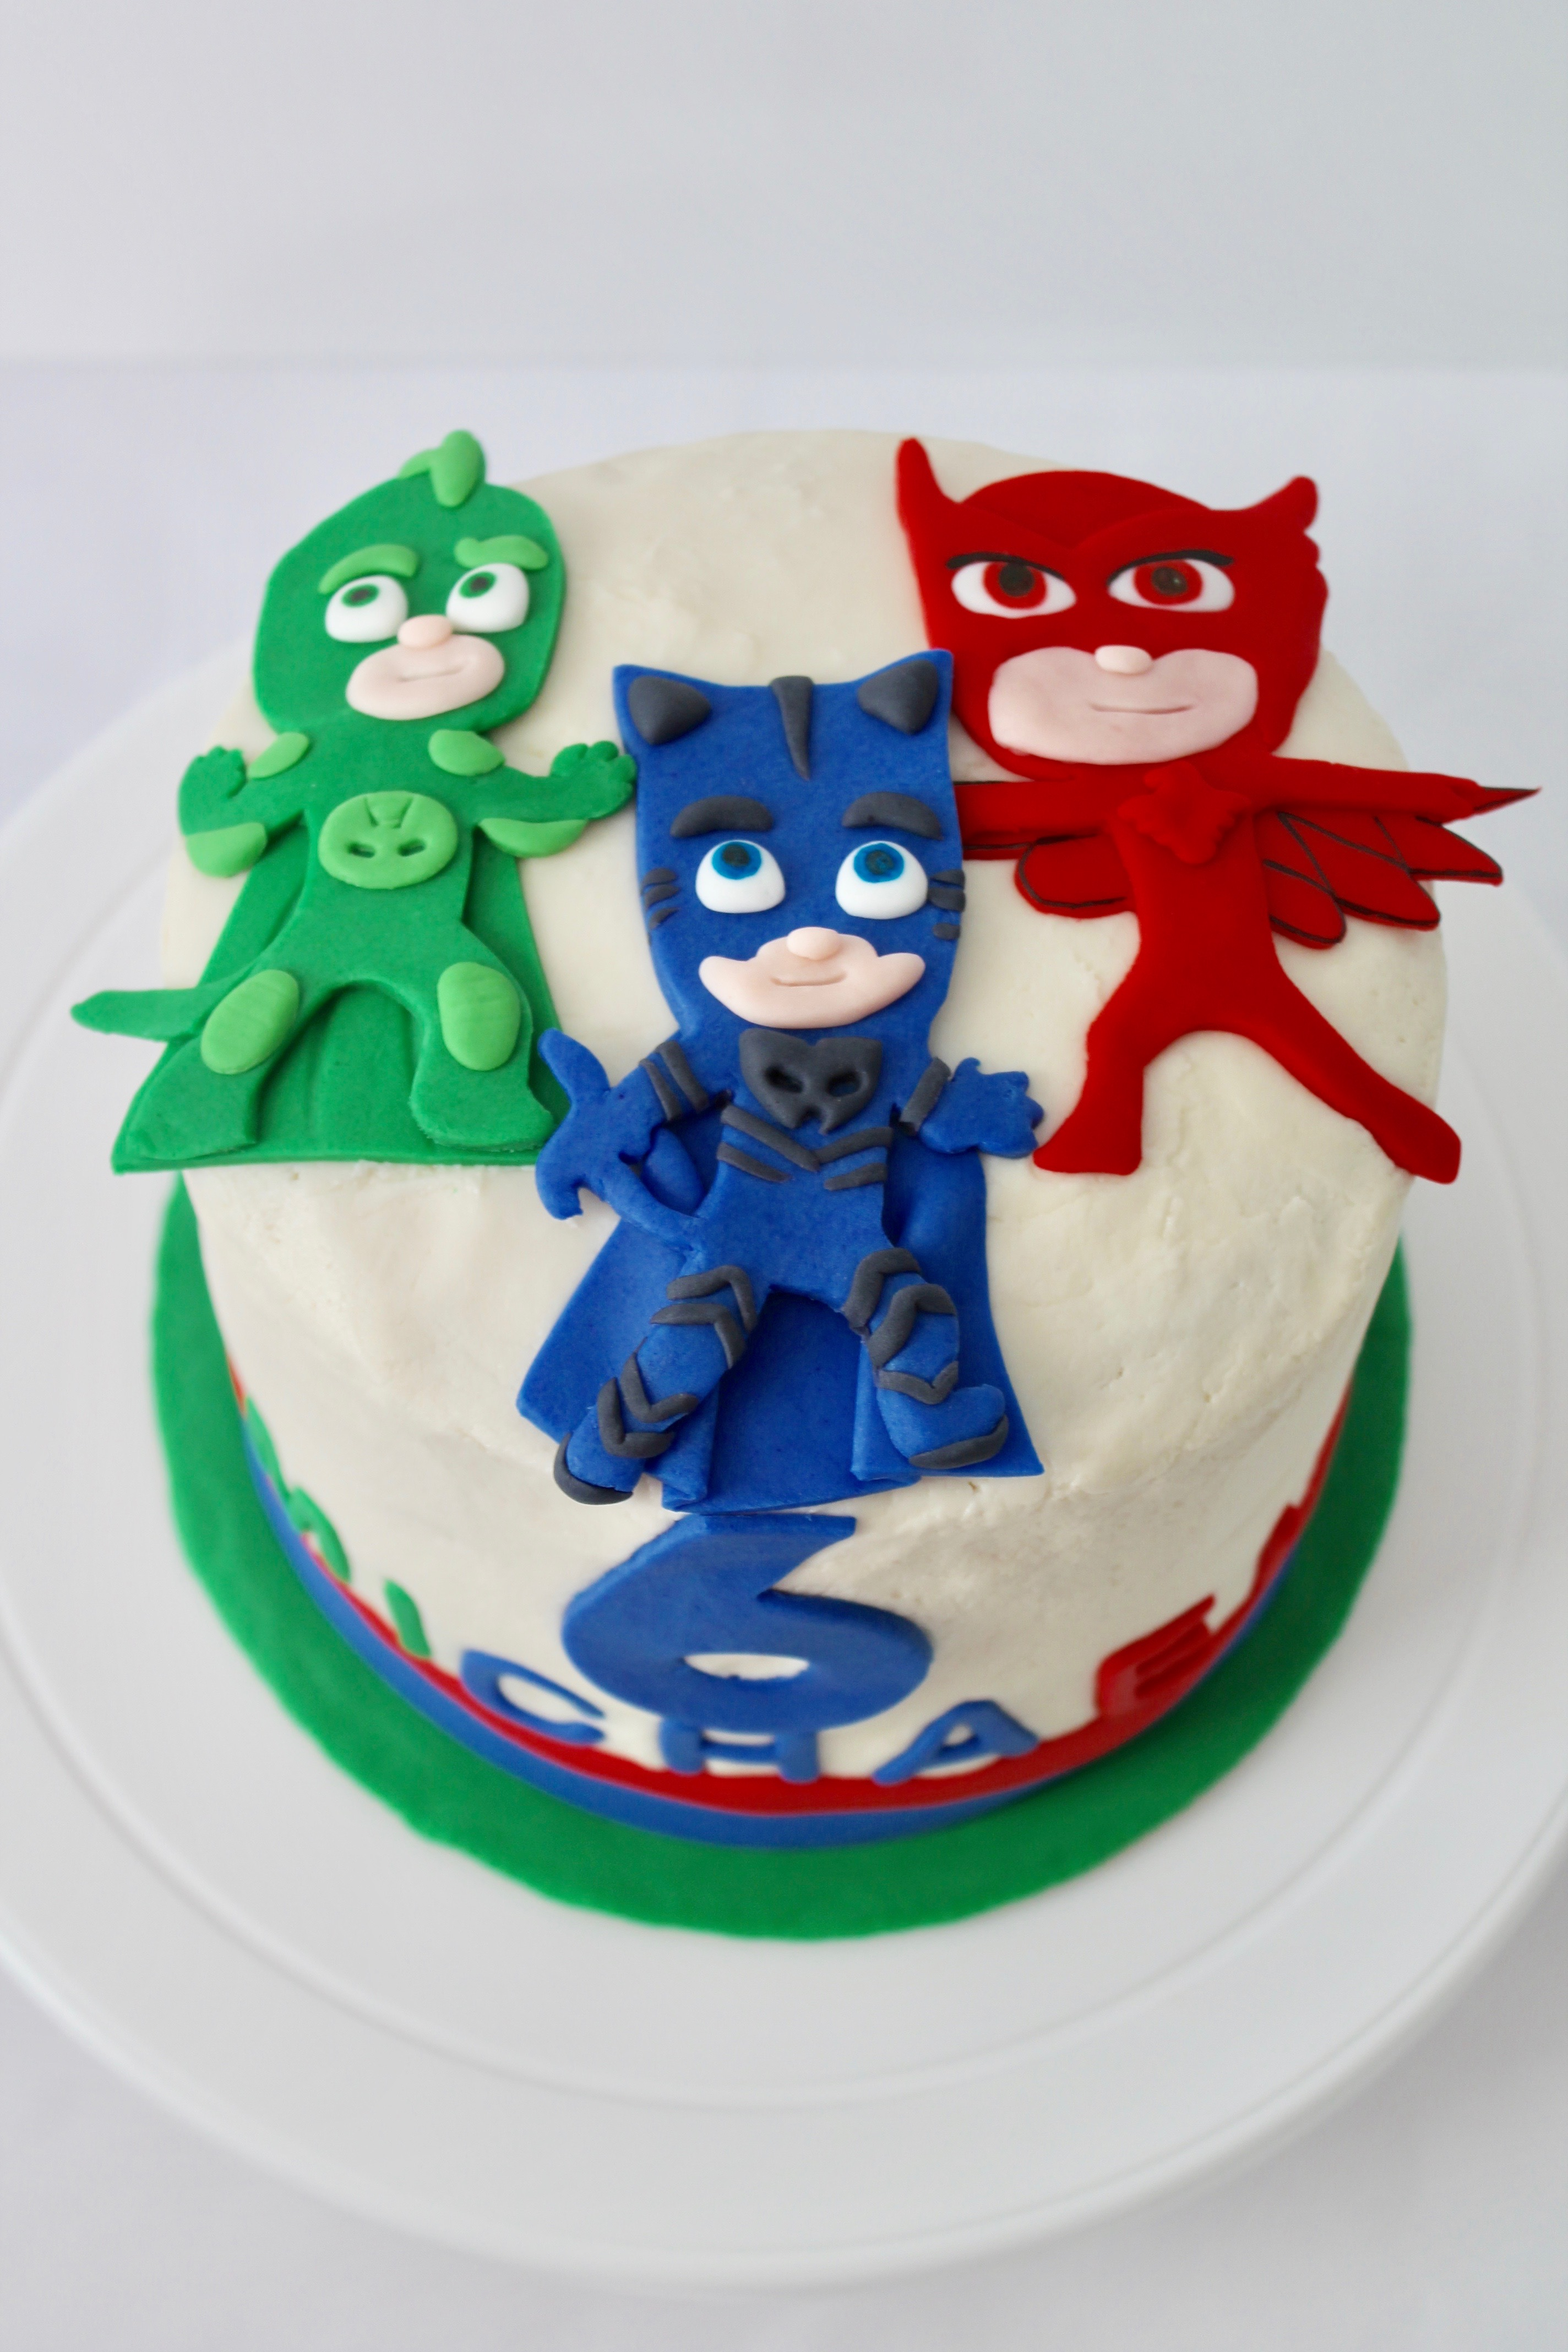 PJ Masks Here To Celebrate His 6th Birthday Cake Is A 6 Round Vanilla With Buttercream Filling And 24 Cupcakes Chocolate